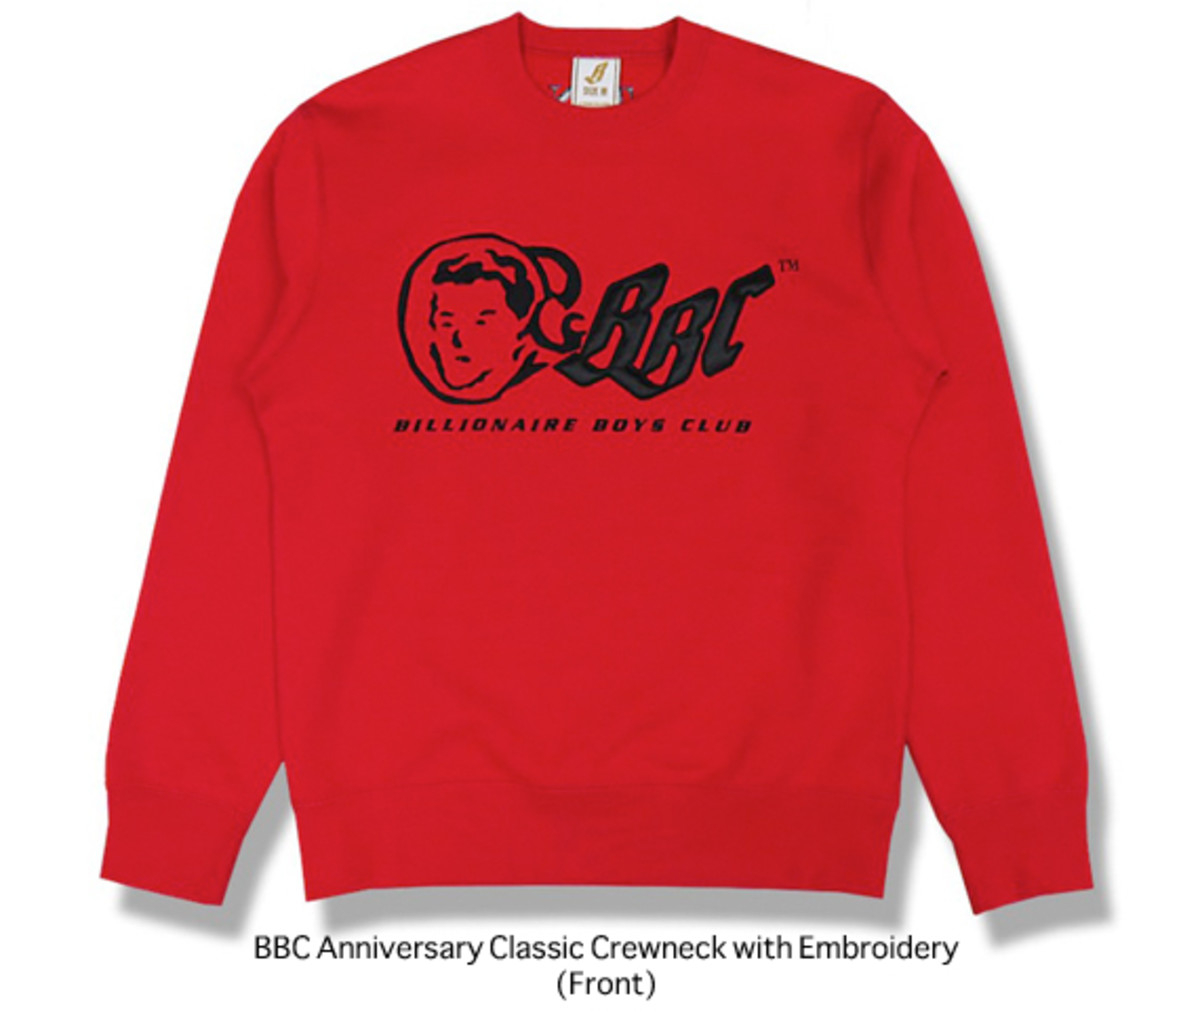 billionaire-boys-club-10th-anniversary-collection-fleece-red-front